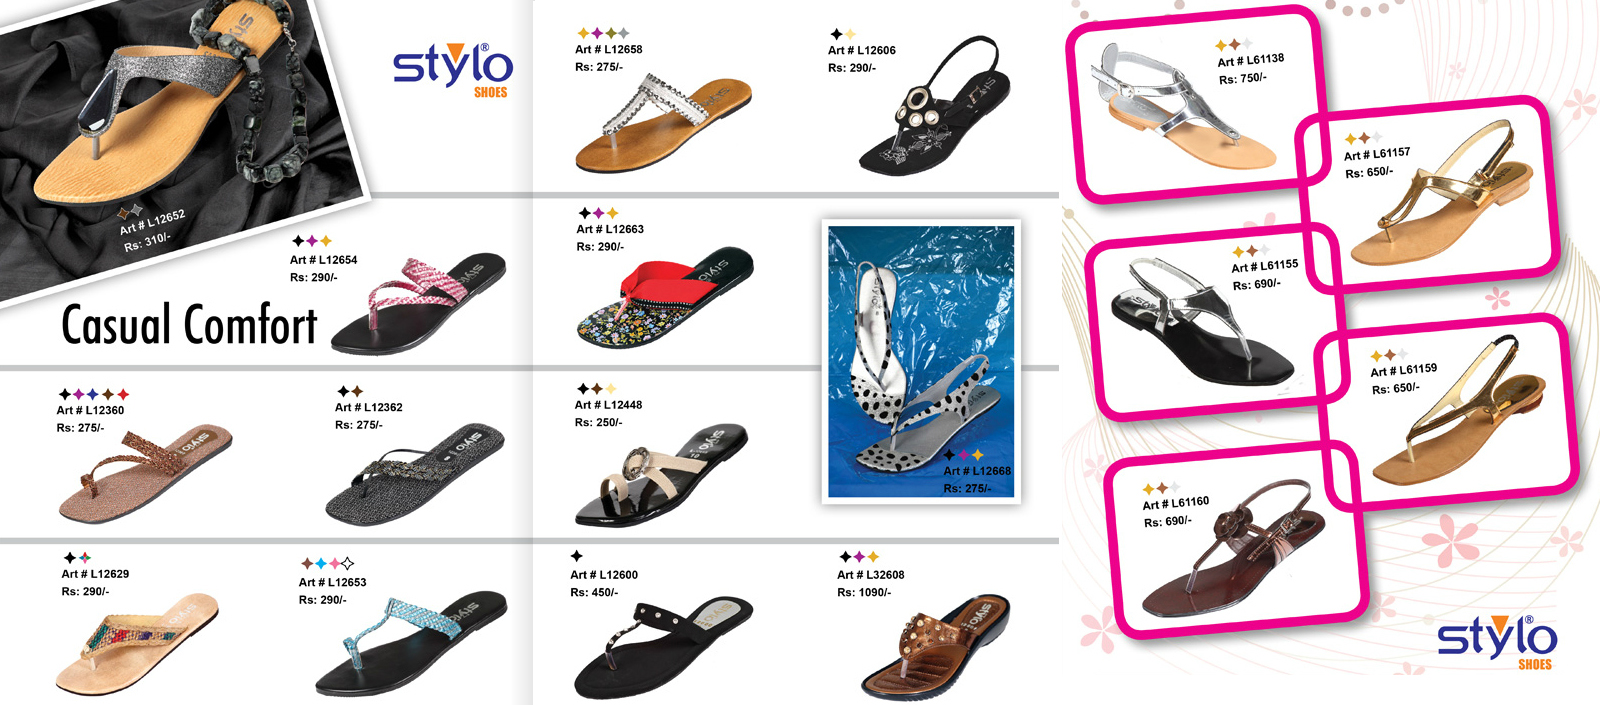 Stylo Shoes In Lahore With Price